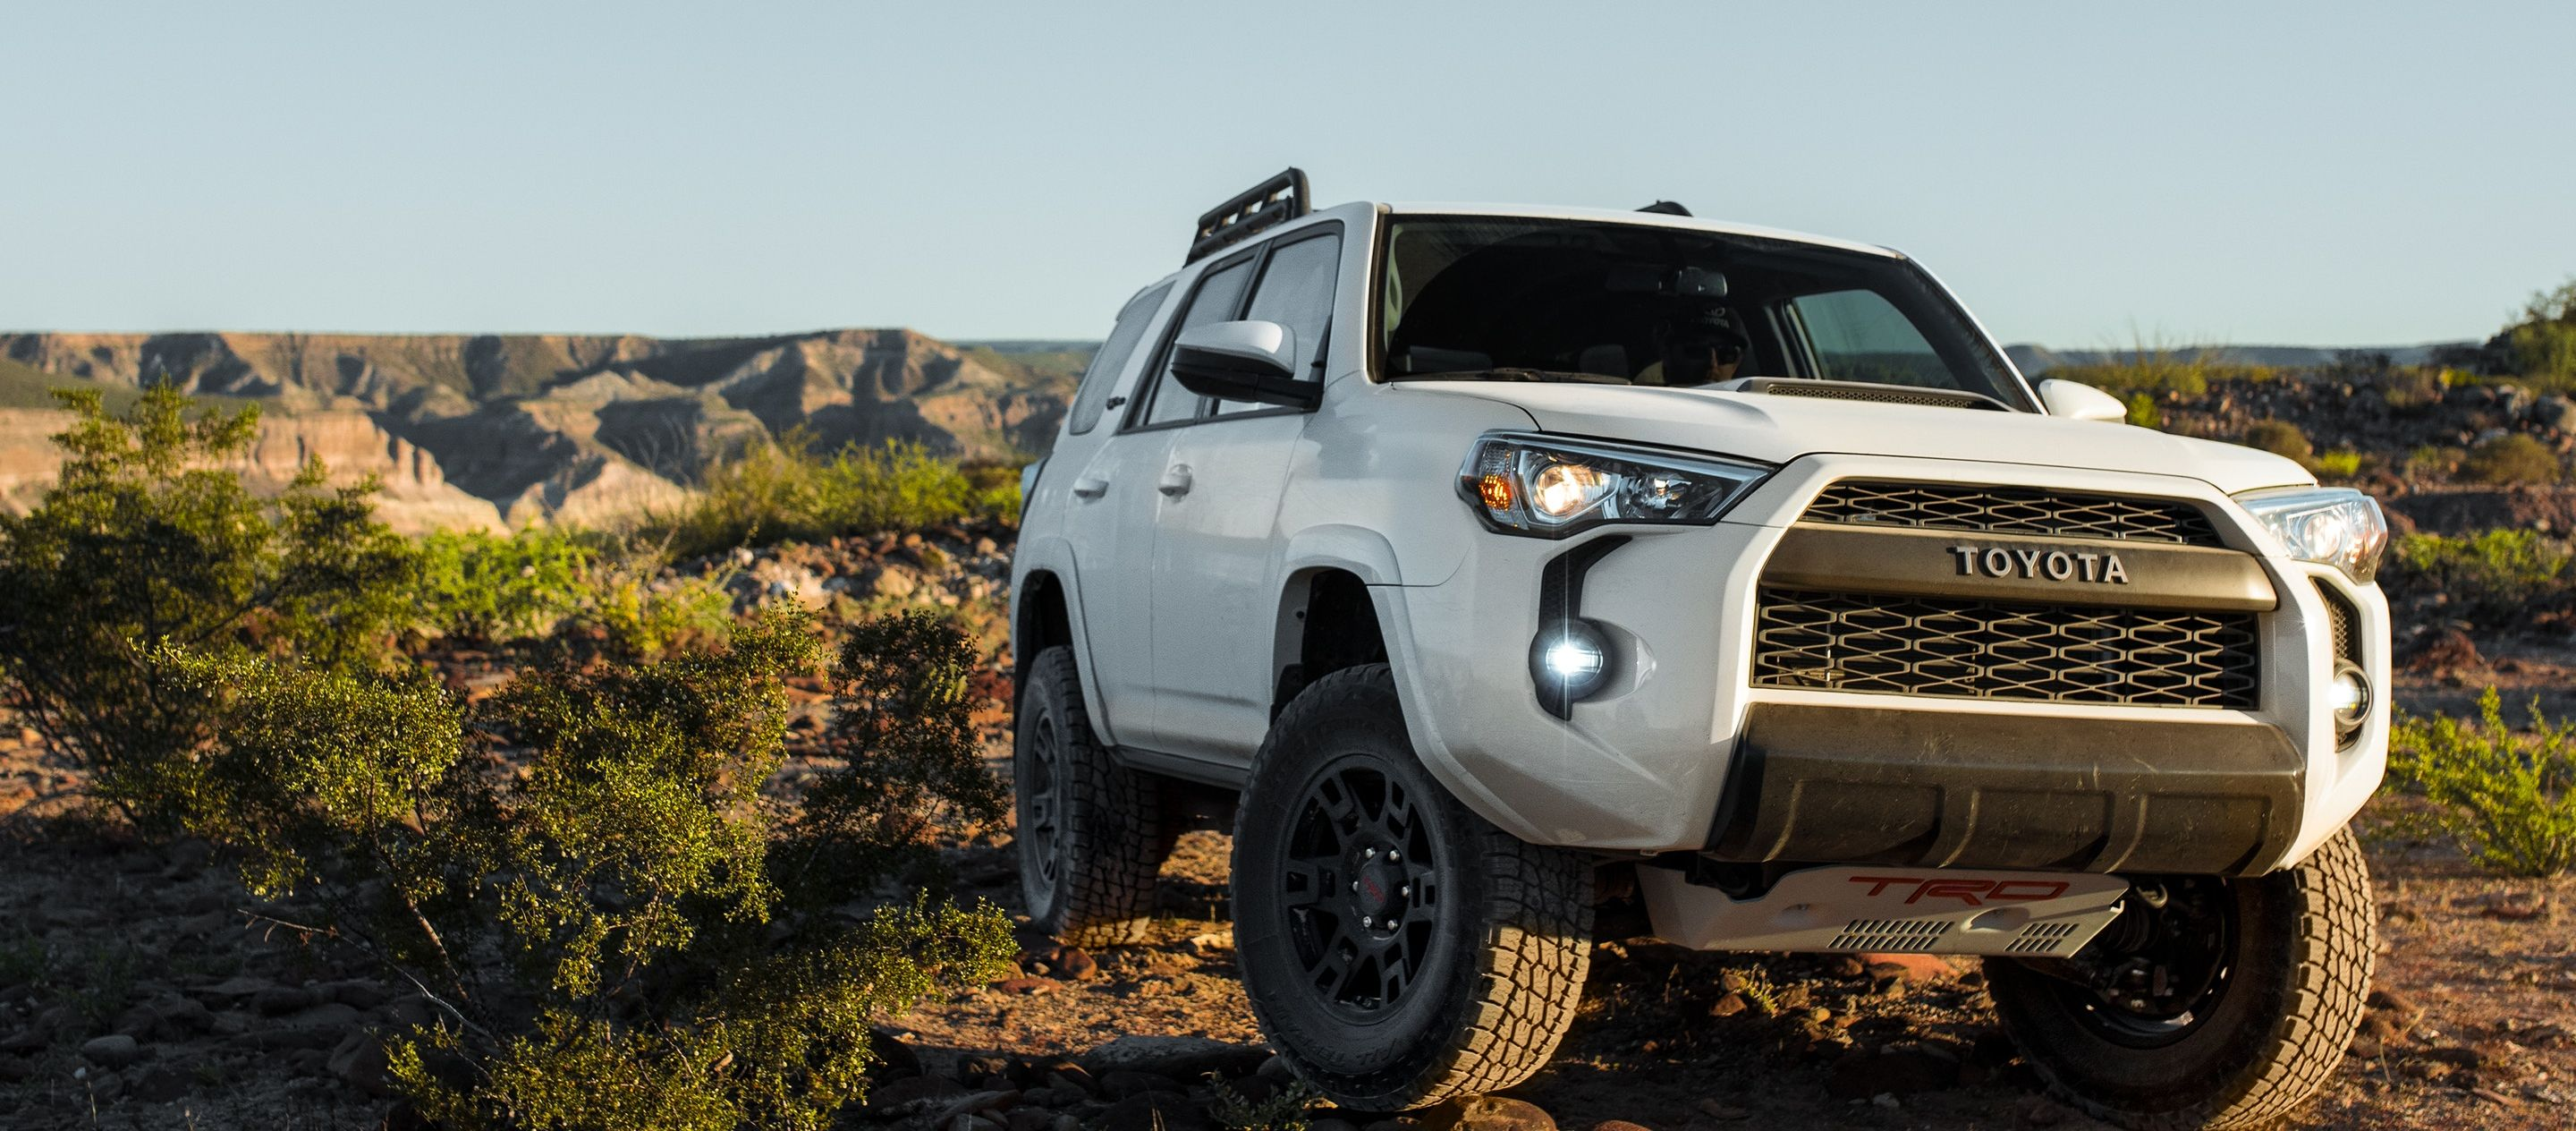 2019 Toyota 4Runner Leasing near Des Moines, IA - Toyota of Des Moines